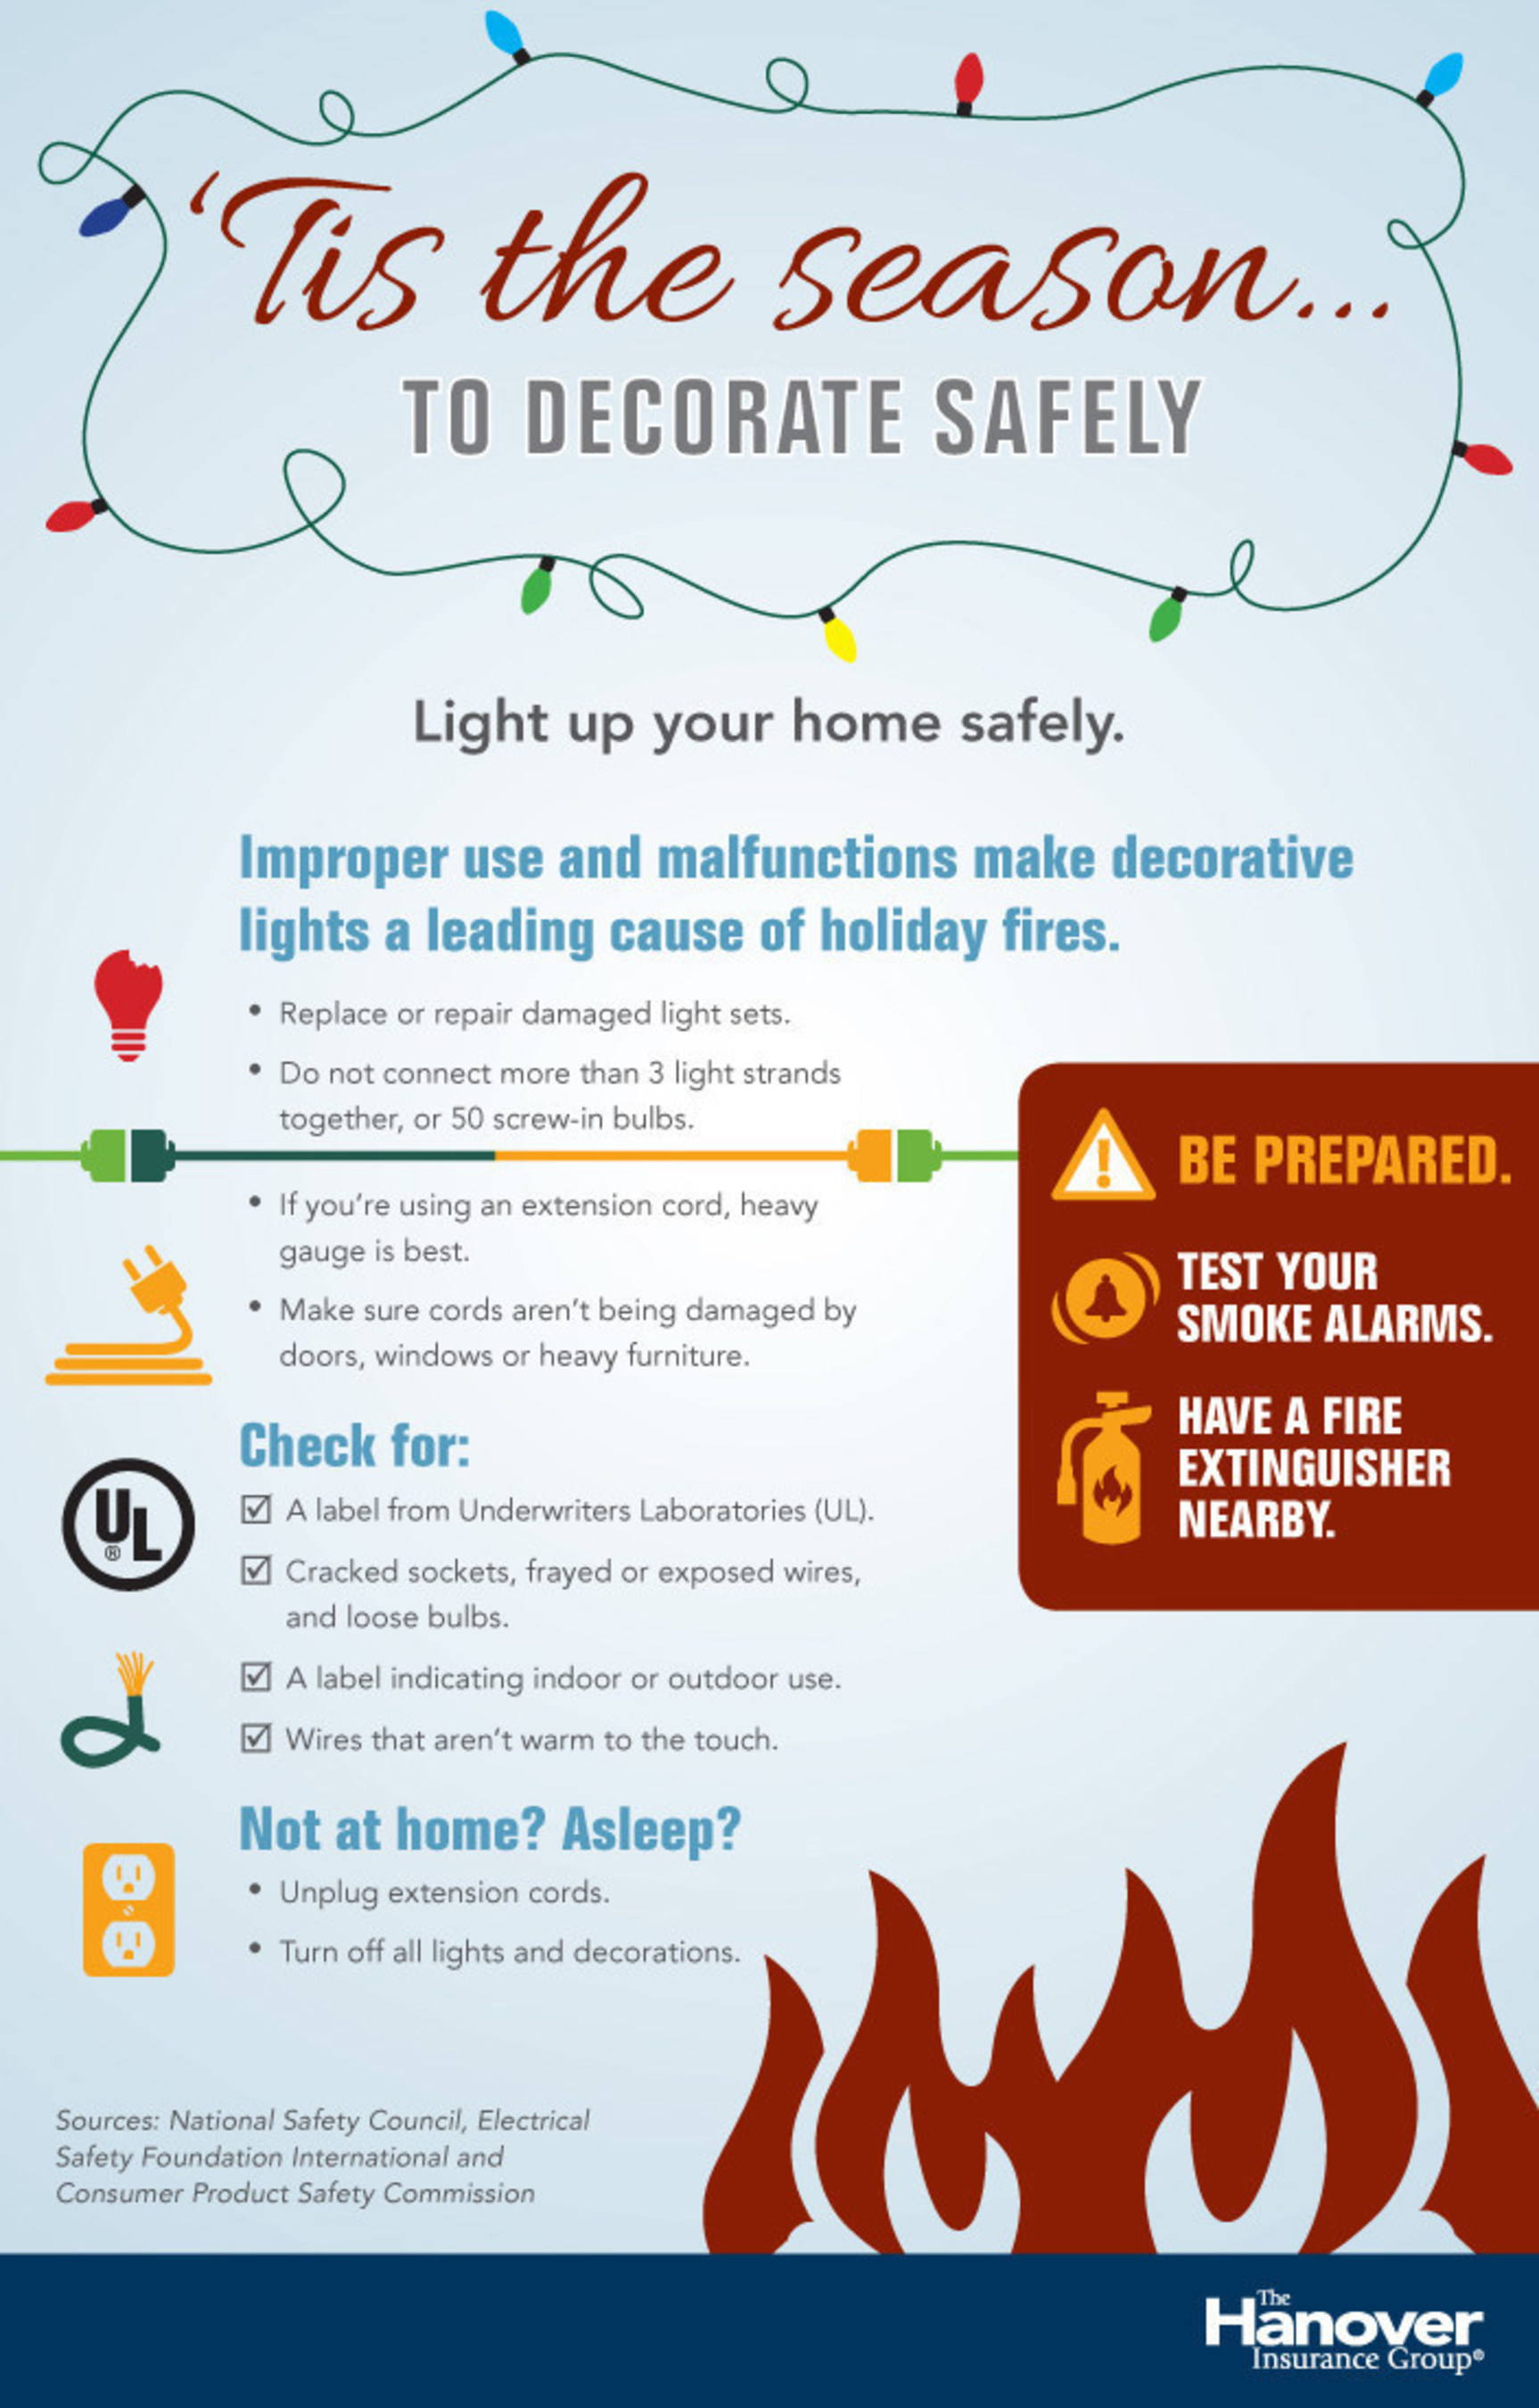 Improper use and malfunctions make decorative lights a leading cause of holiday fires. Tips to decorate safely ...